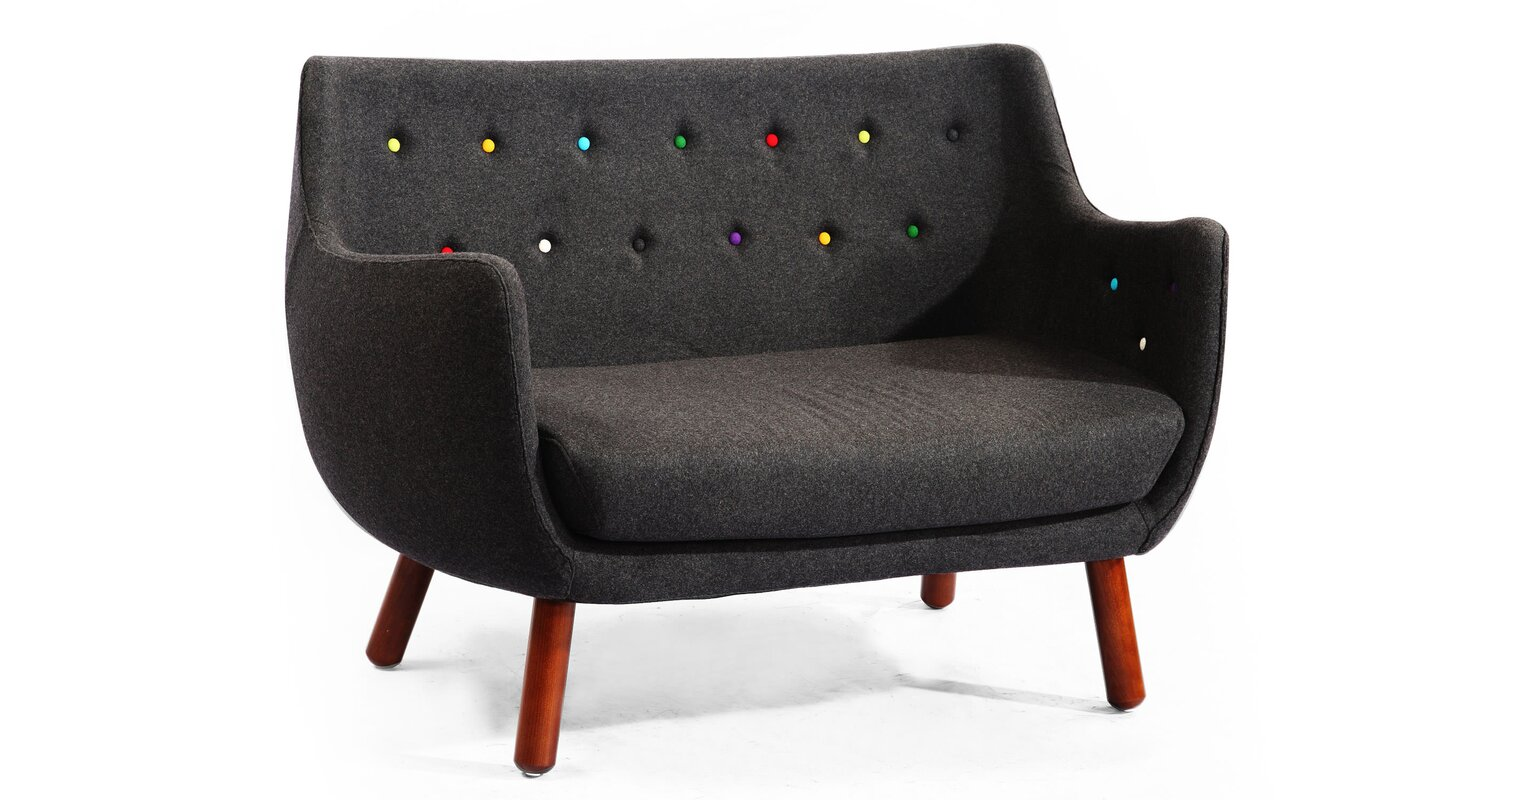 Kardiel Parlor Mid Century Loveseat & Reviews | Wayfair Ki check price on amazon velvet fabric womb chair with ottoman more than 800 items furniture for you selection www.cocofurniture.com.